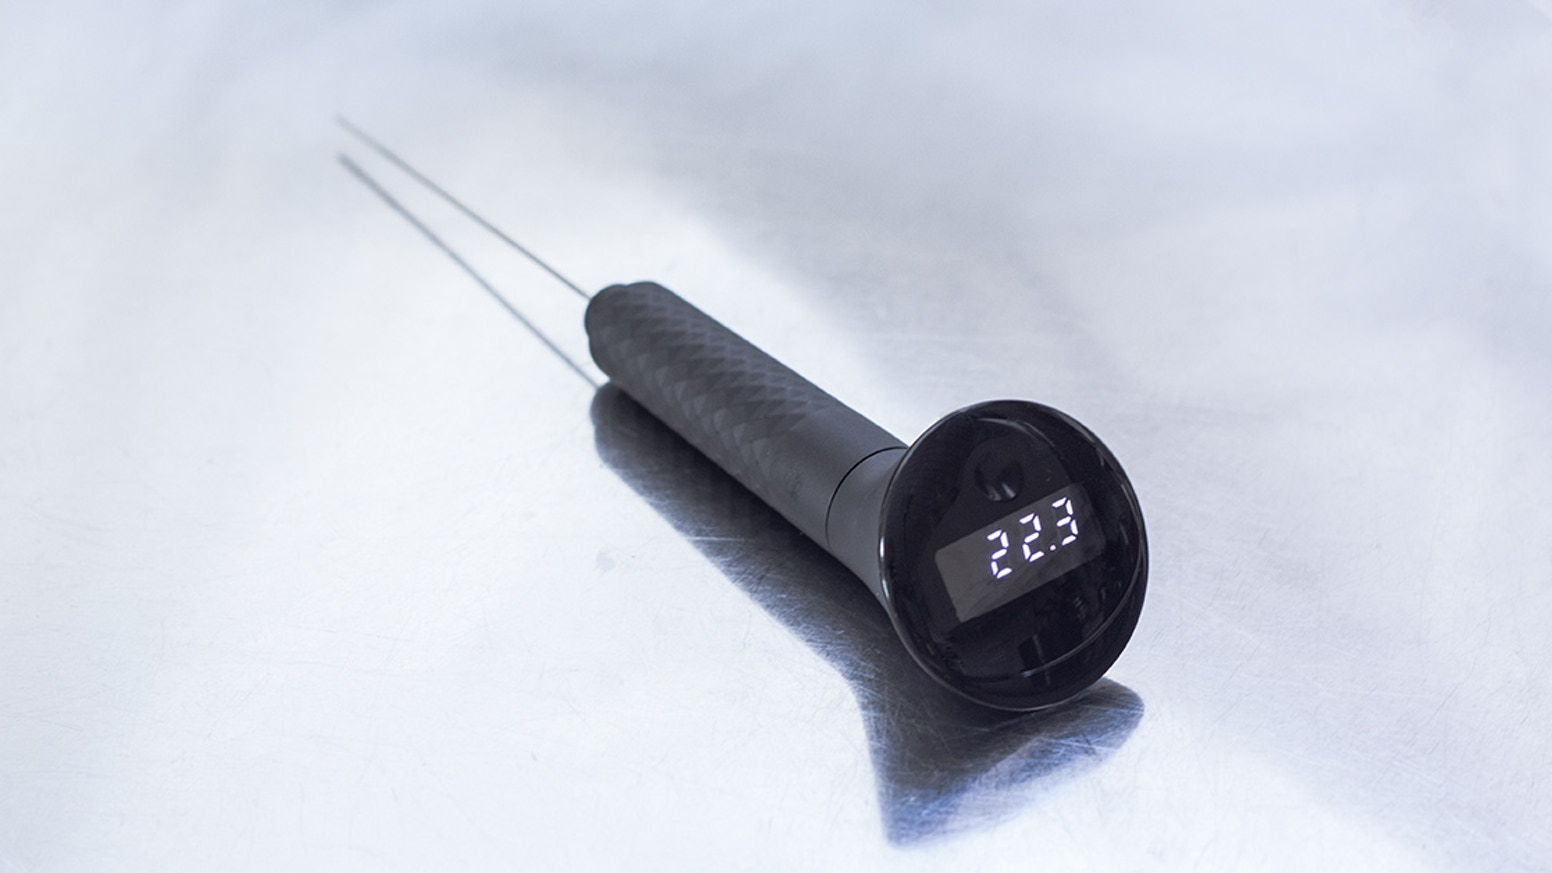 Still want to prebook the thermometer? Send us a mail!